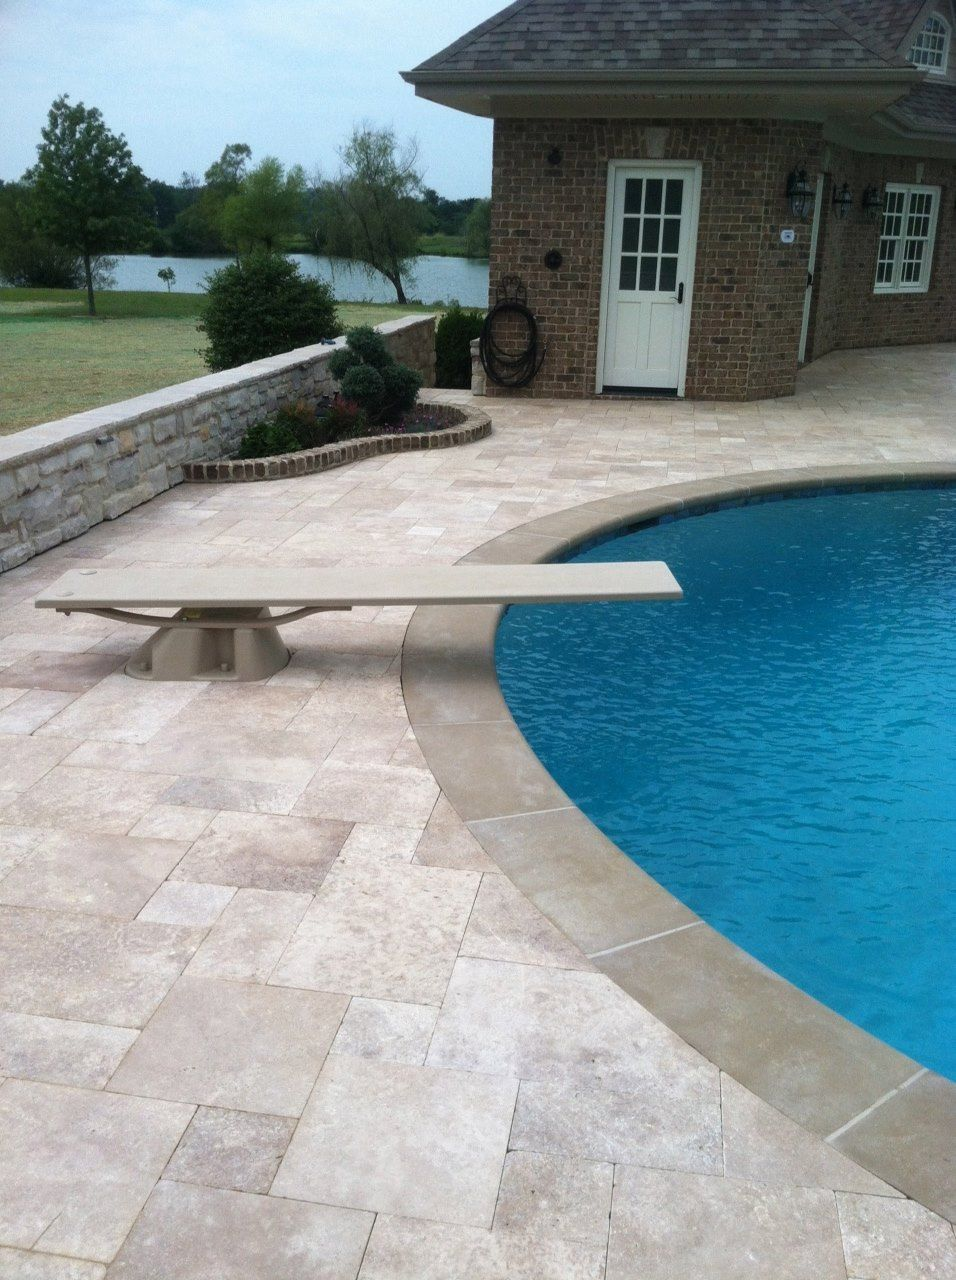 Travertine Pavers For Pool For The Home Pool Decks Travertine Paver Pool Deck Installation Part 1 In 2020 Travertine Pool Decking Pool Patio Pavers Travertine Pool